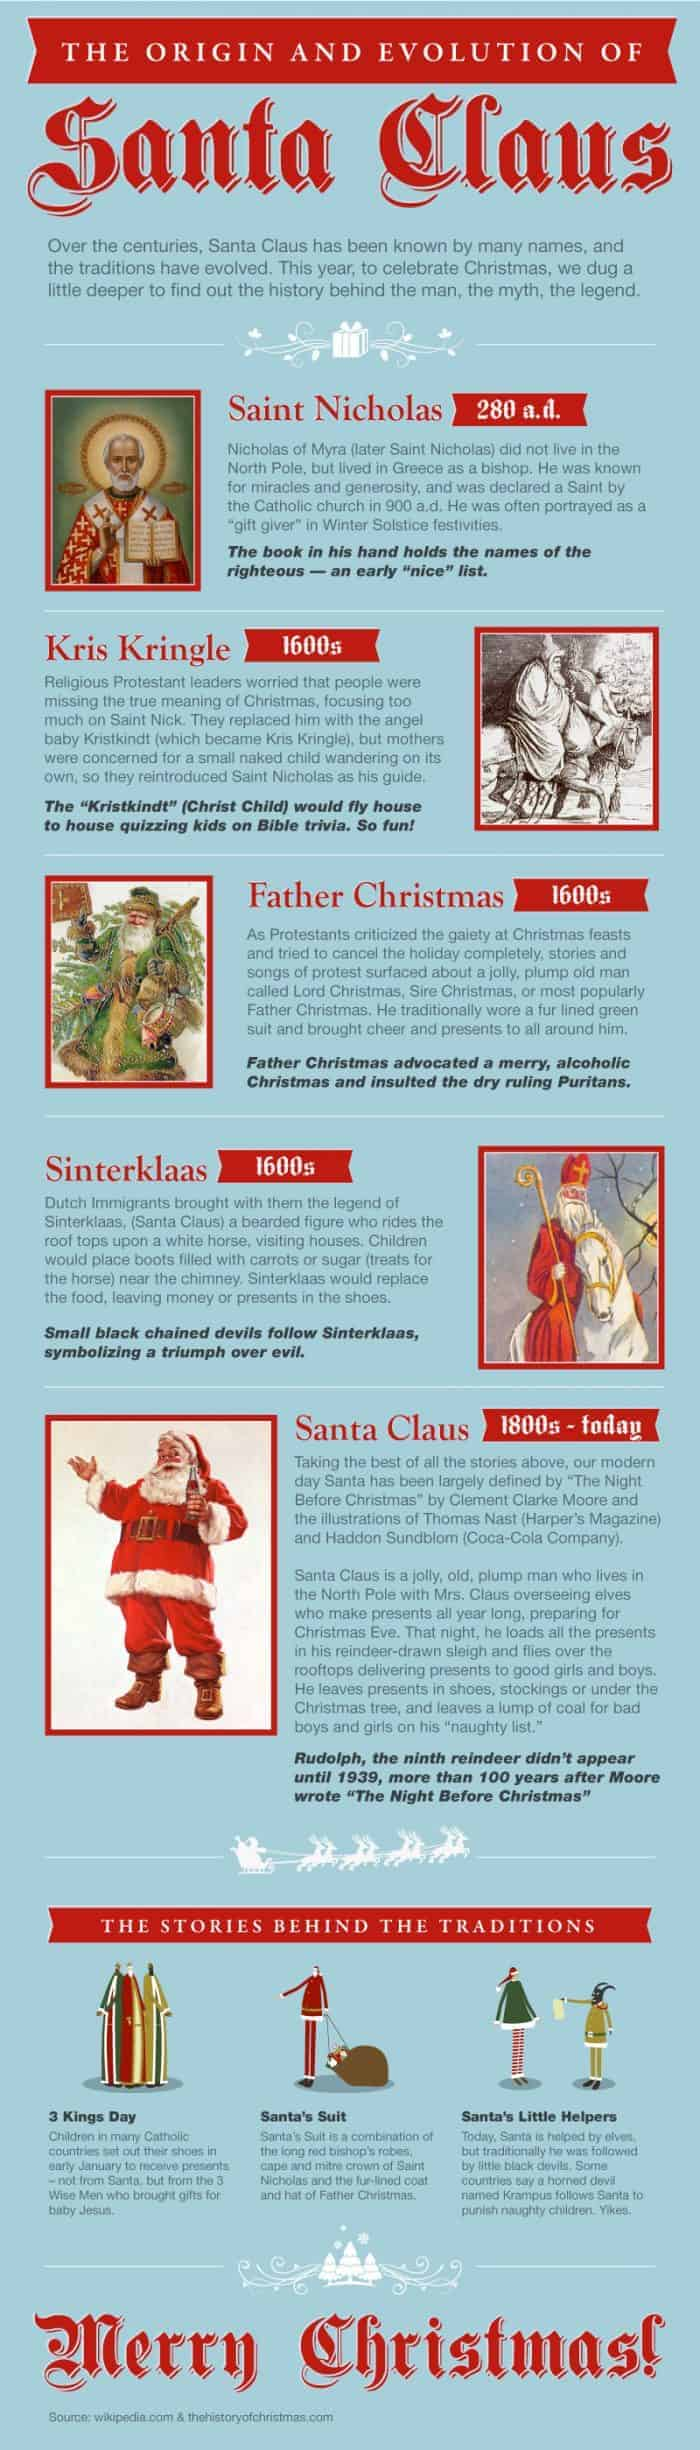 Origin and Evolution of Santa Claus Infographic